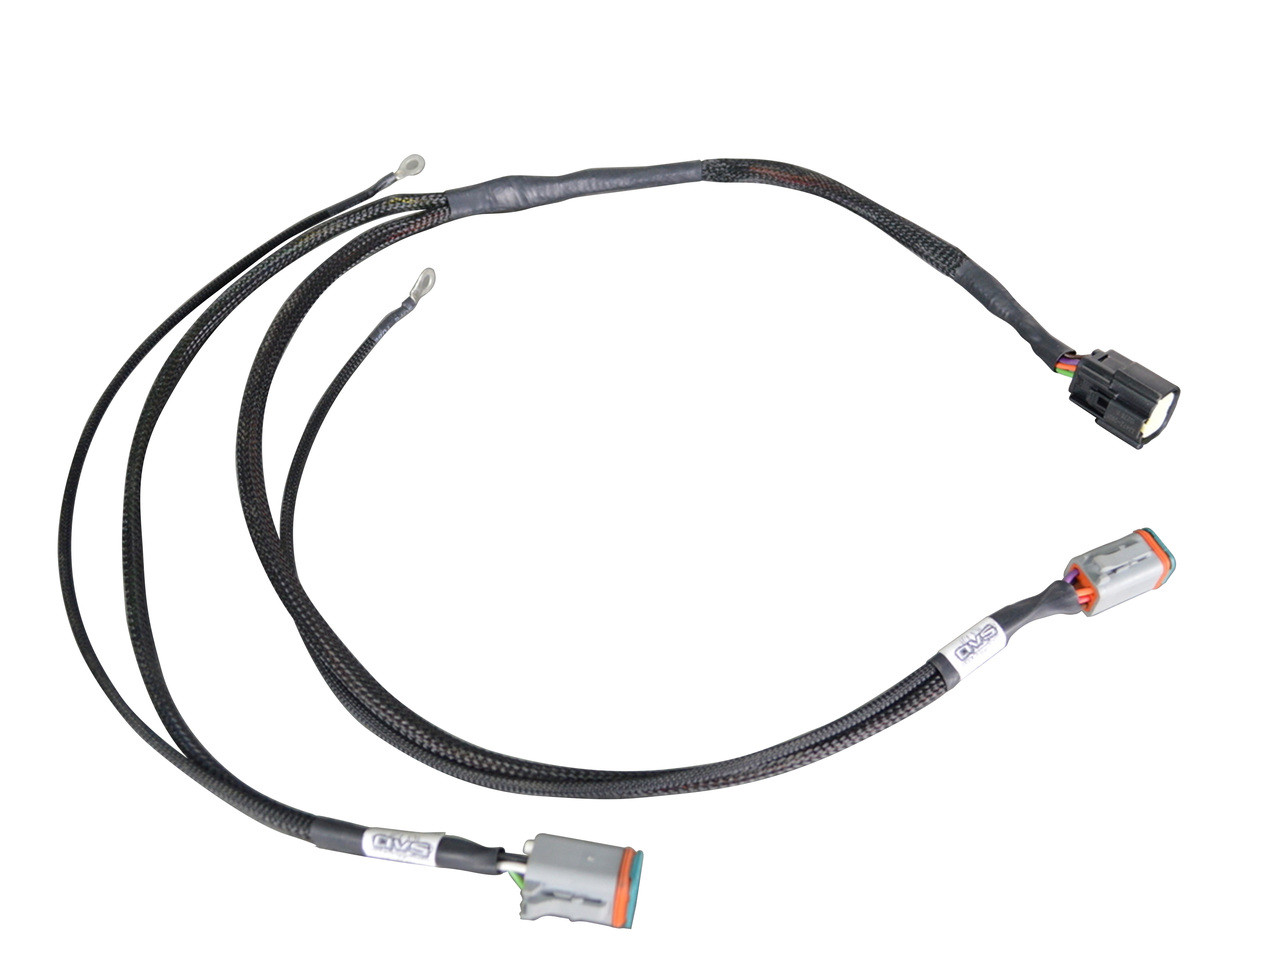 avs valve wiring harness for accuair endo vt tank to e level switchspeed [ 1280 x 979 Pixel ]